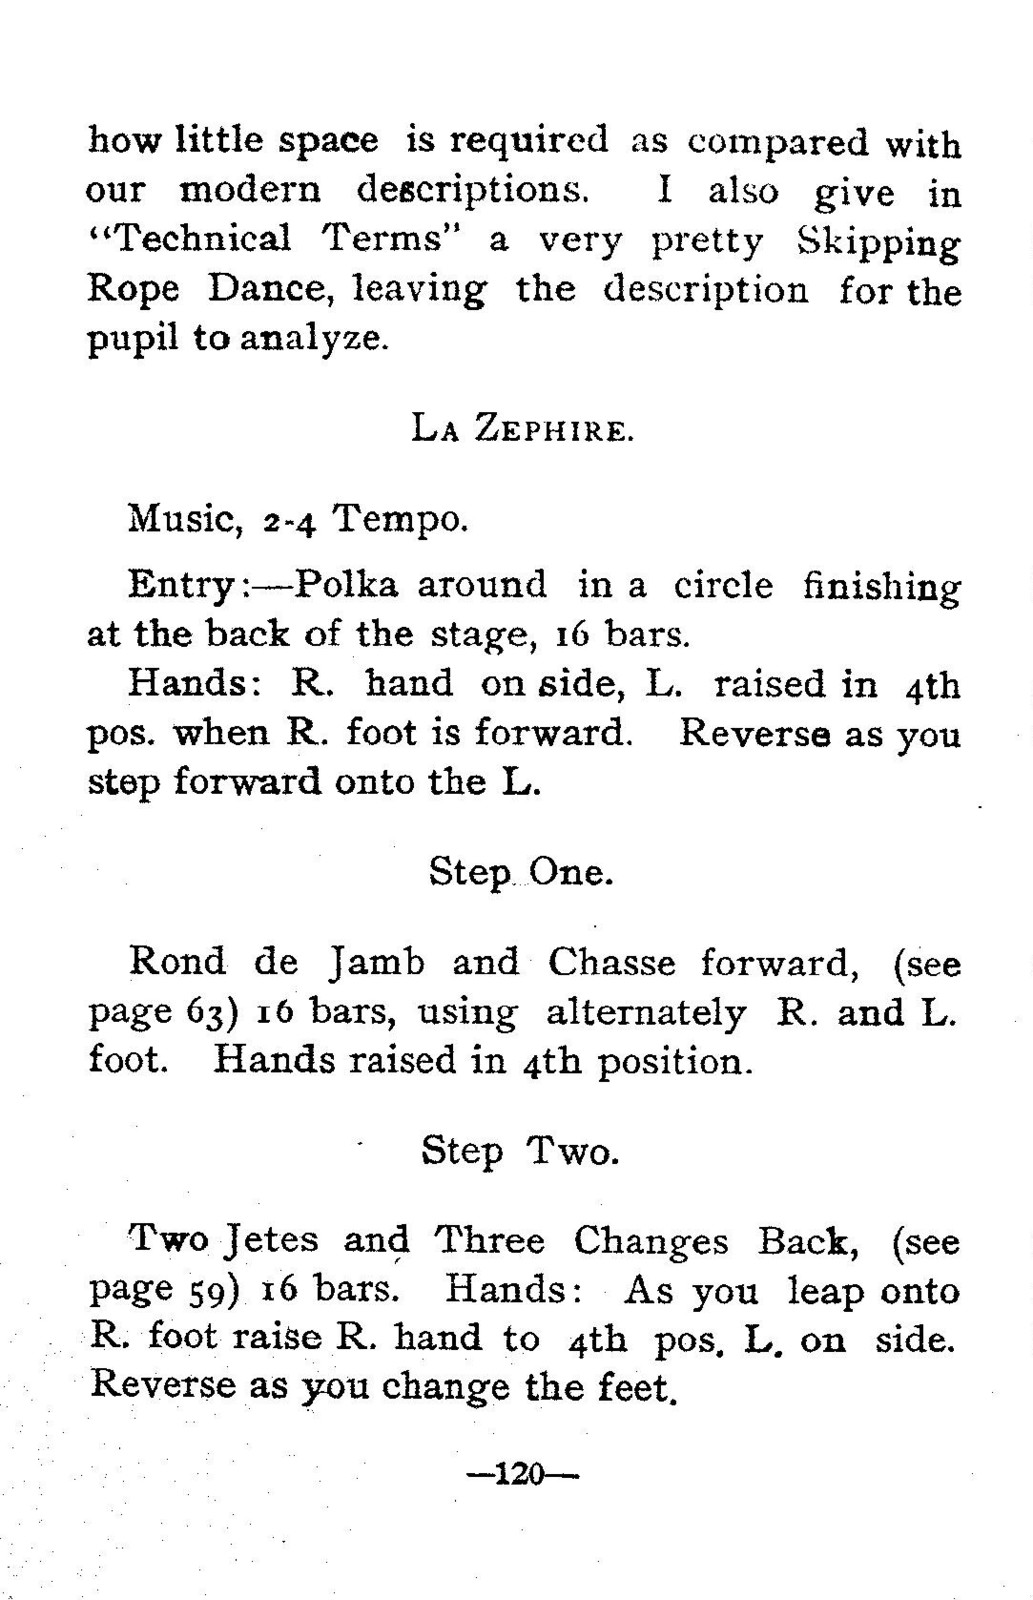 Clendenen's treatise on elementary and classical dancing